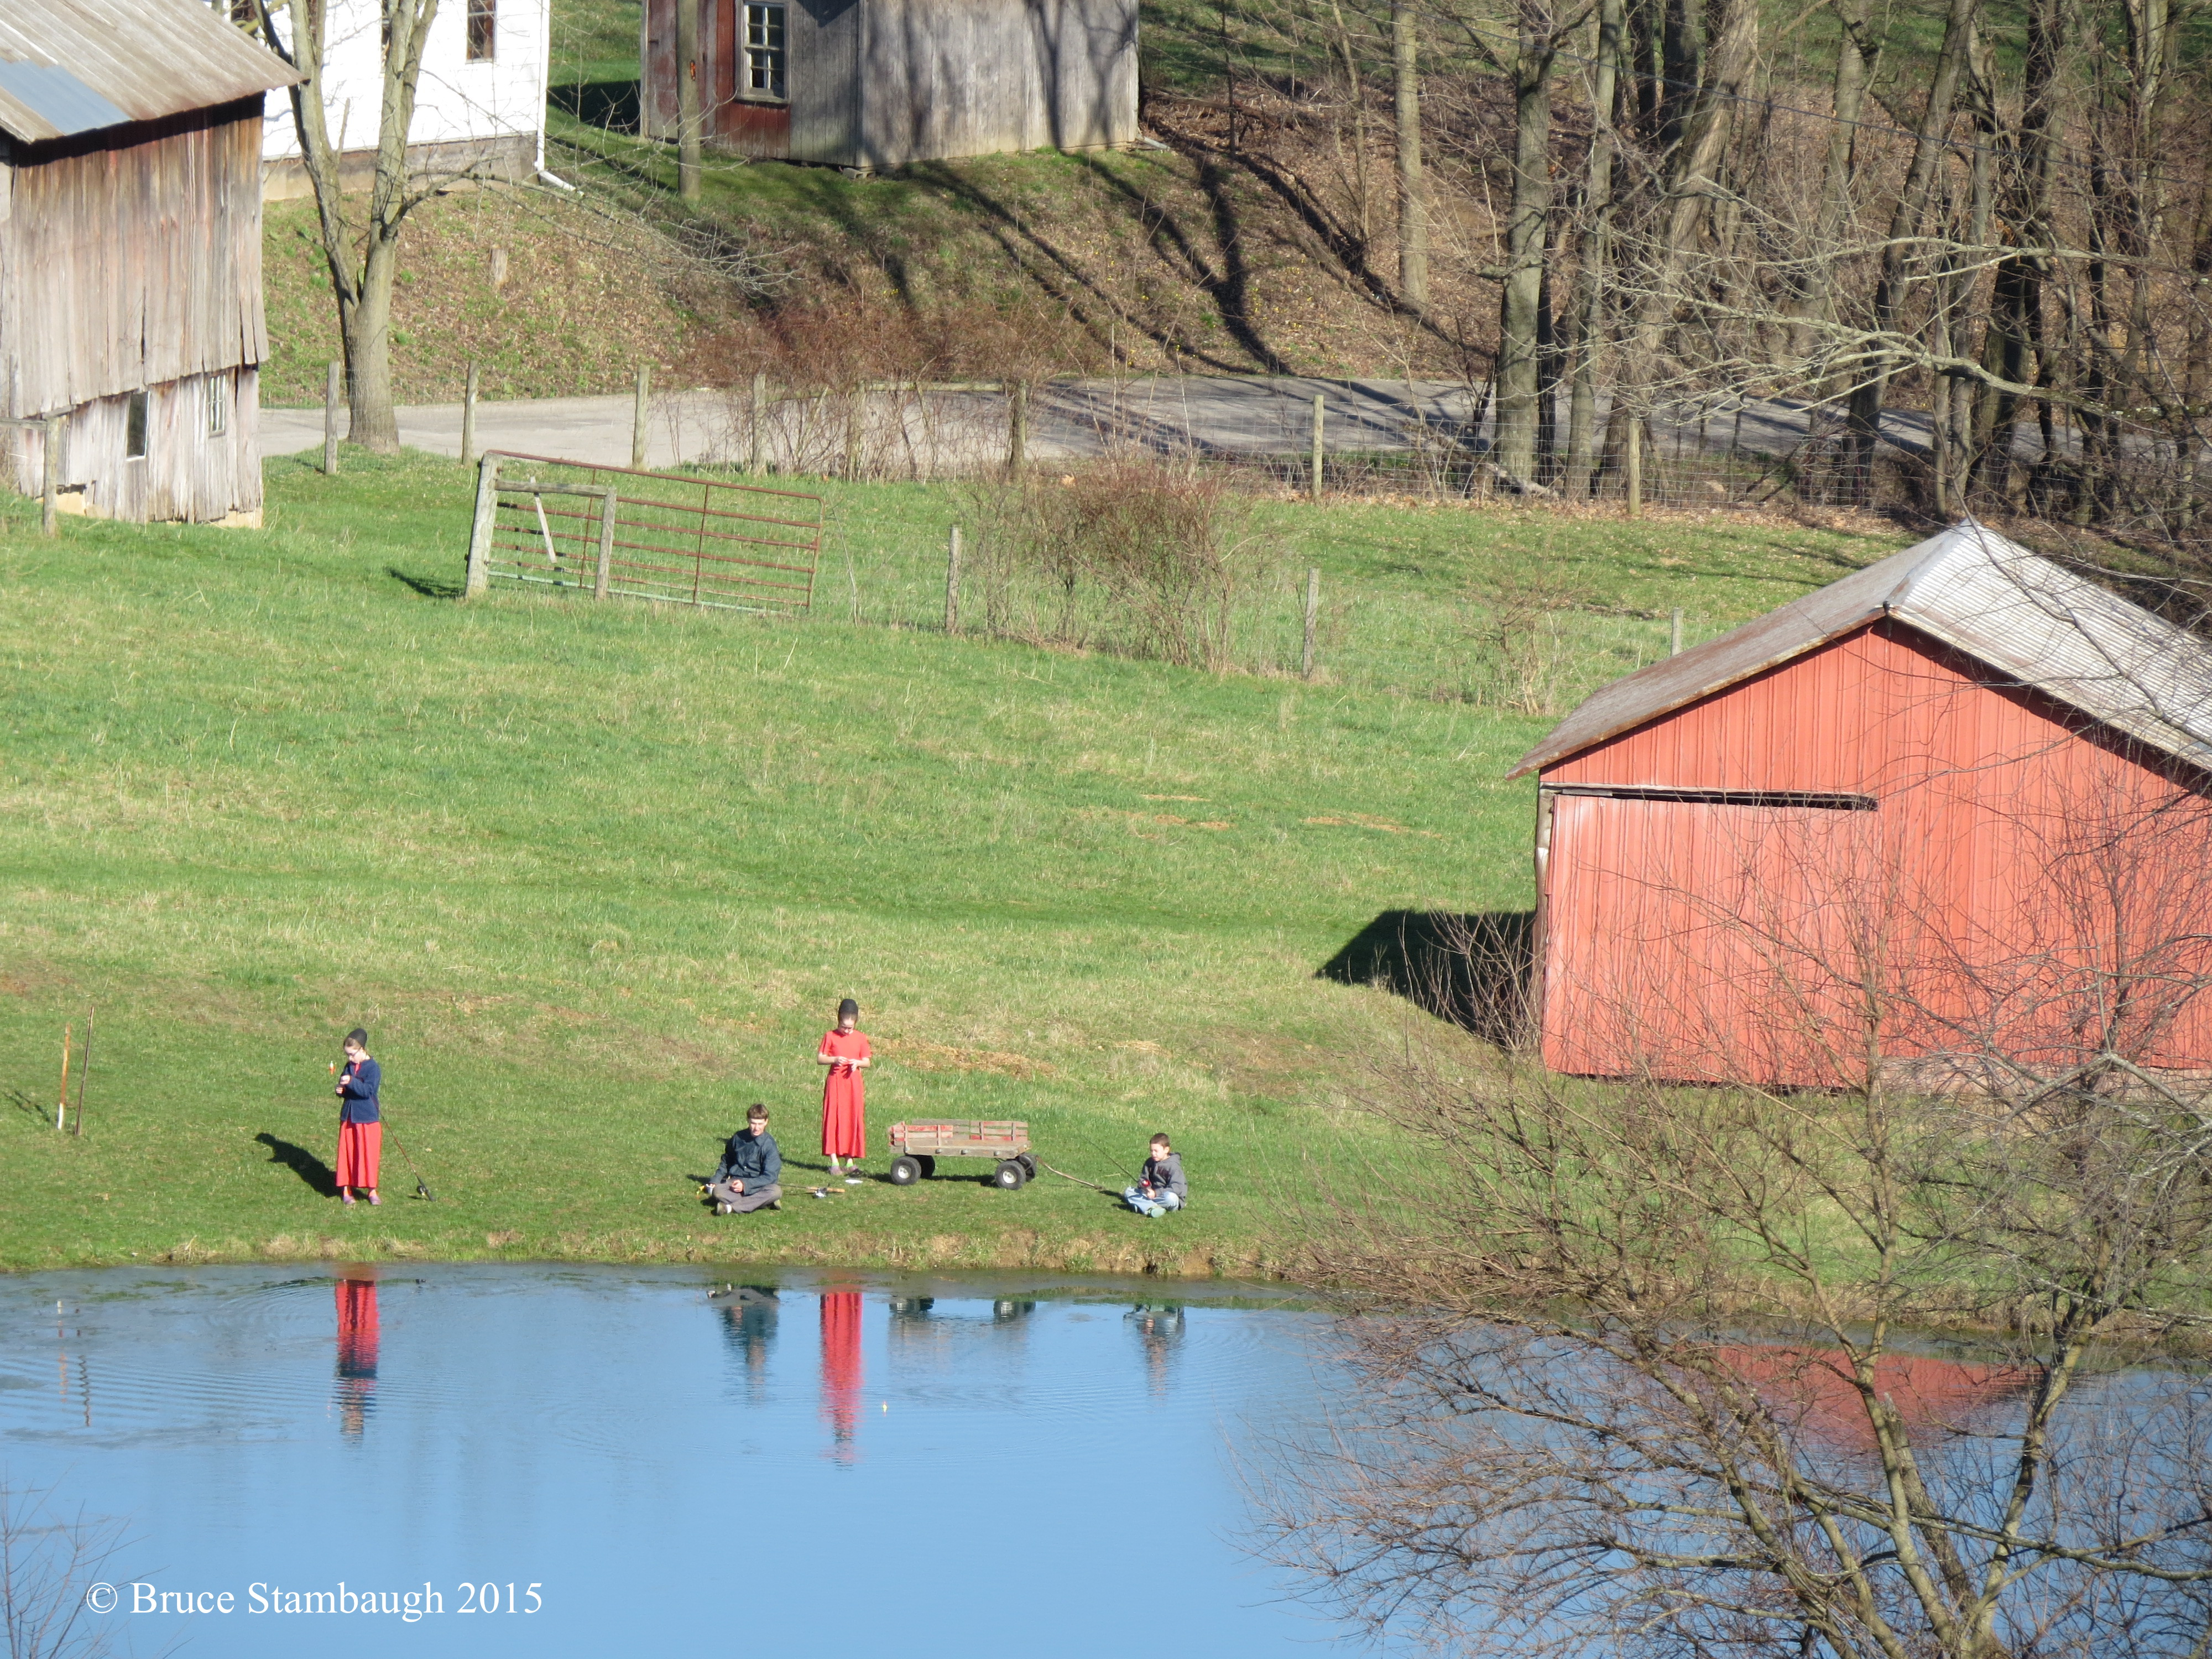 Amish children, fishing, pond